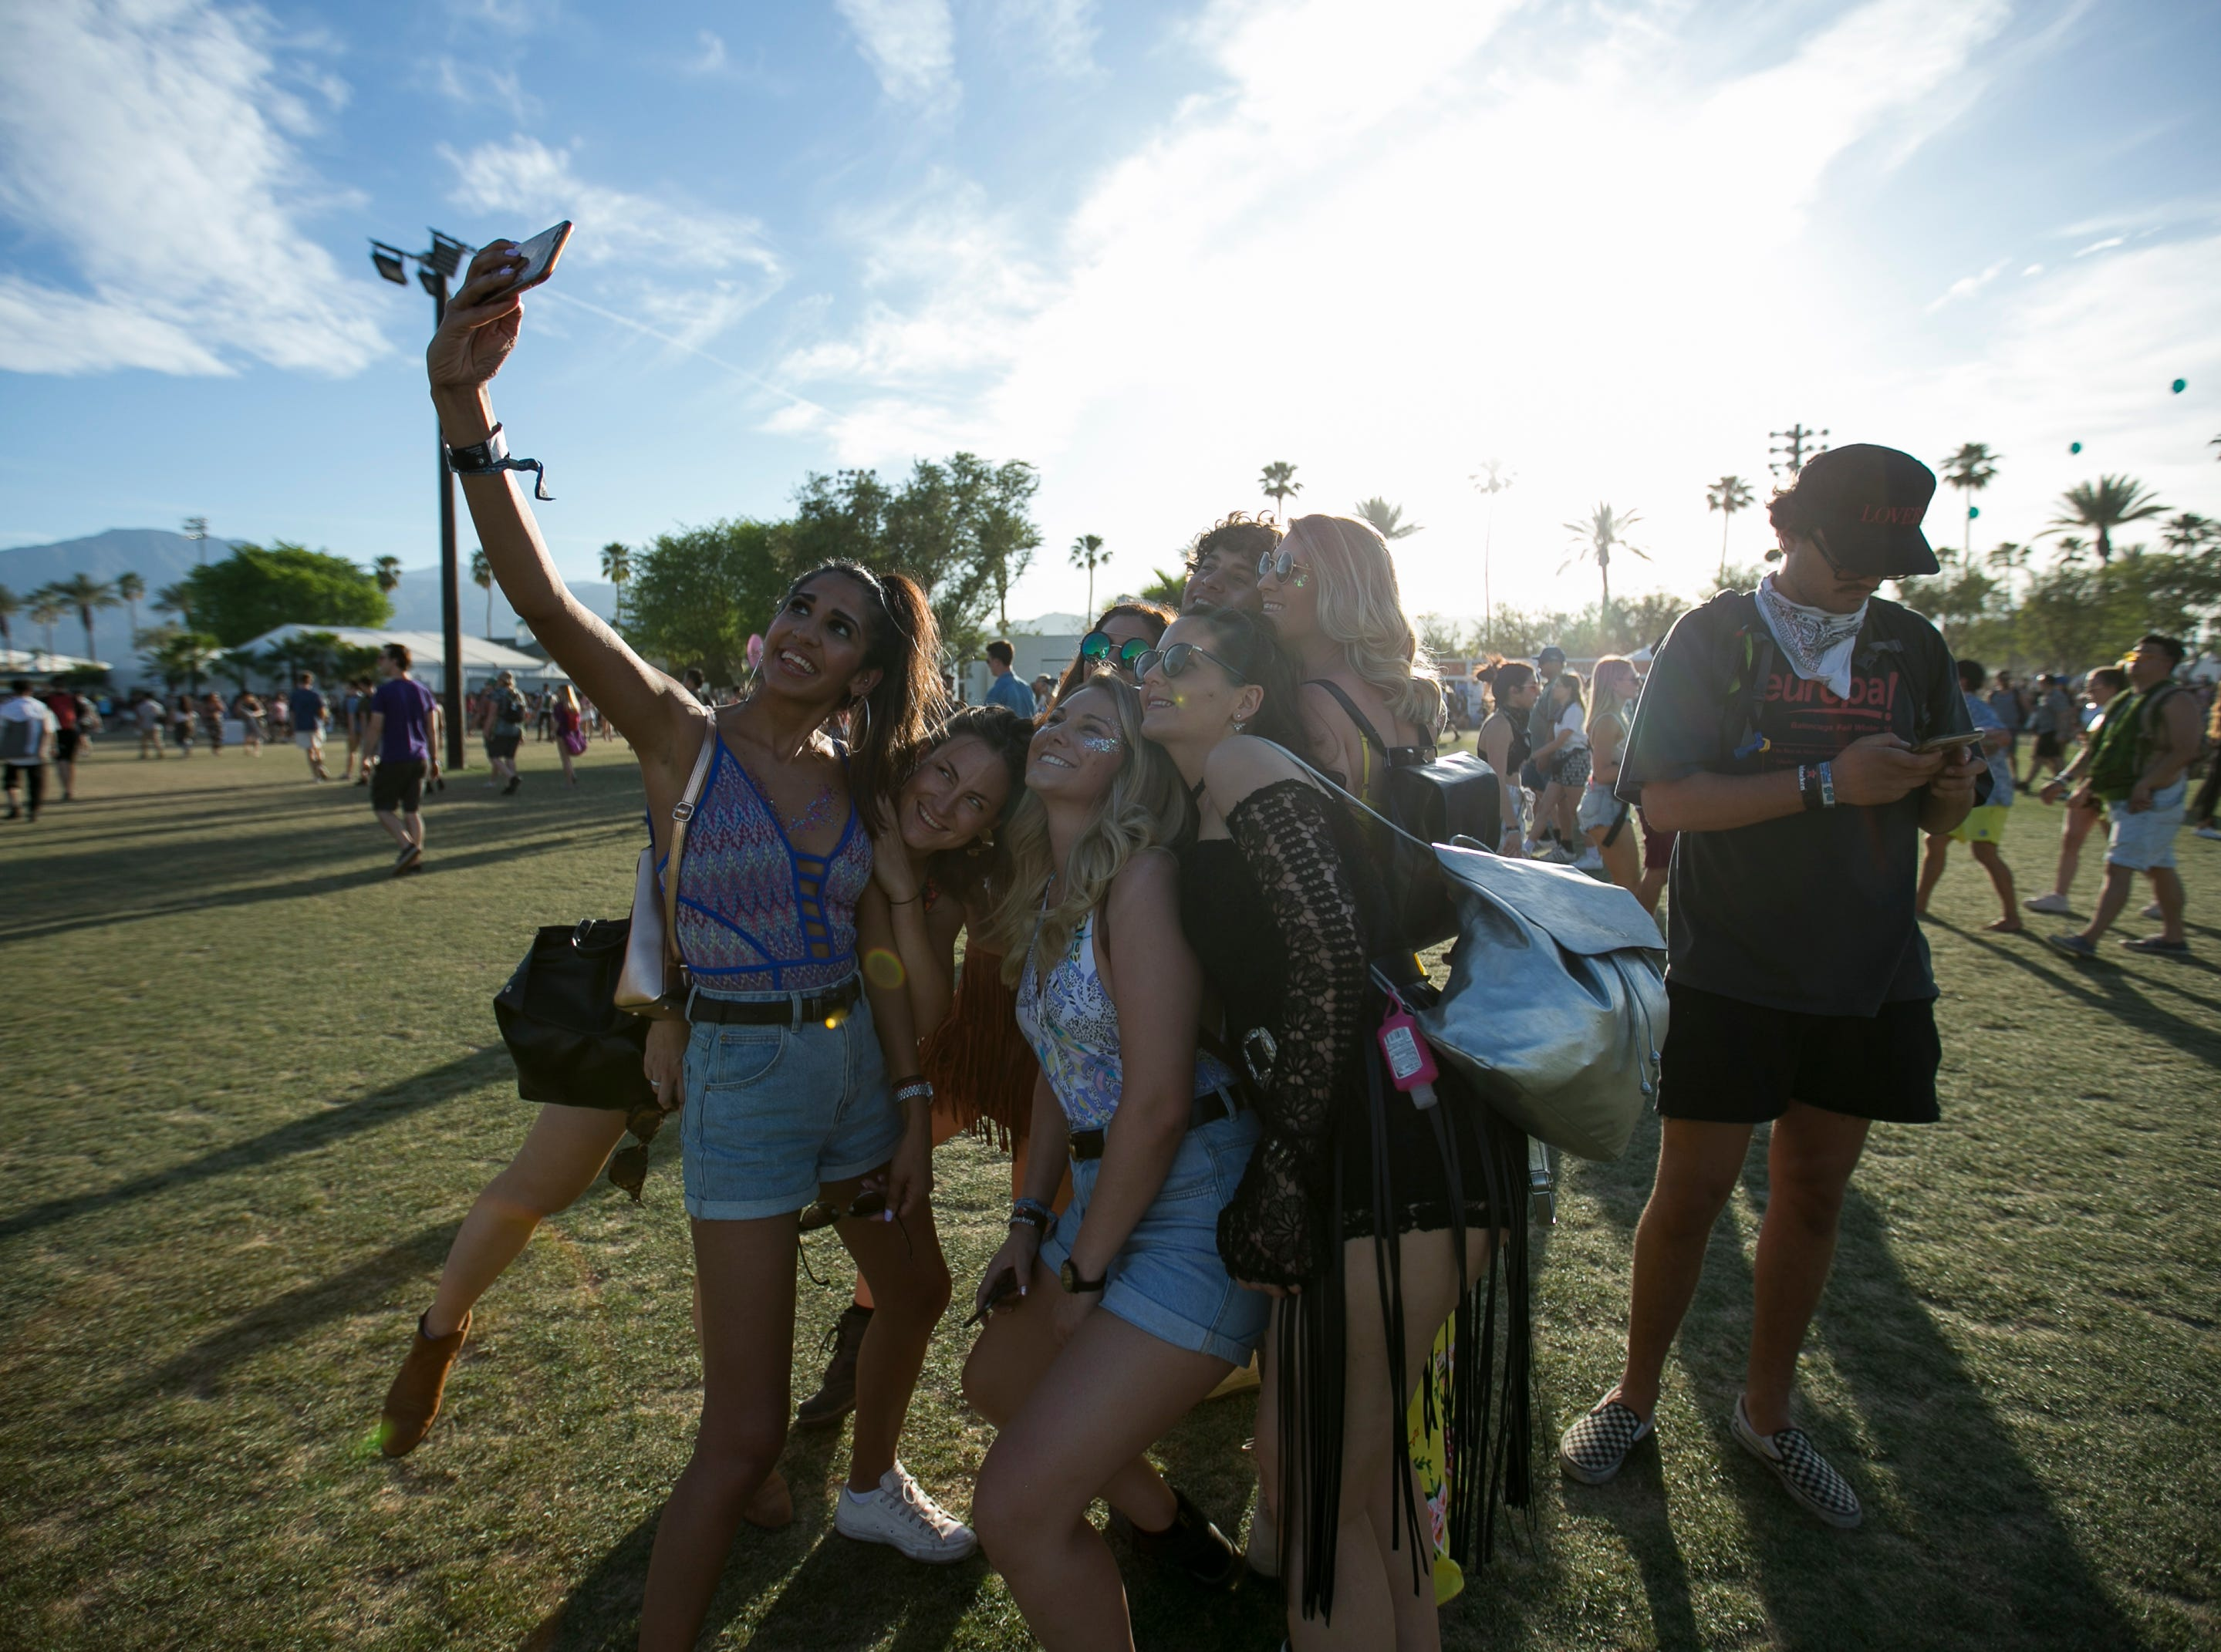 Festival goers pose for a selfie at the Coachella Valley Music and Arts Festival in Indio, Calif., on Sunday, April 14, 2019.